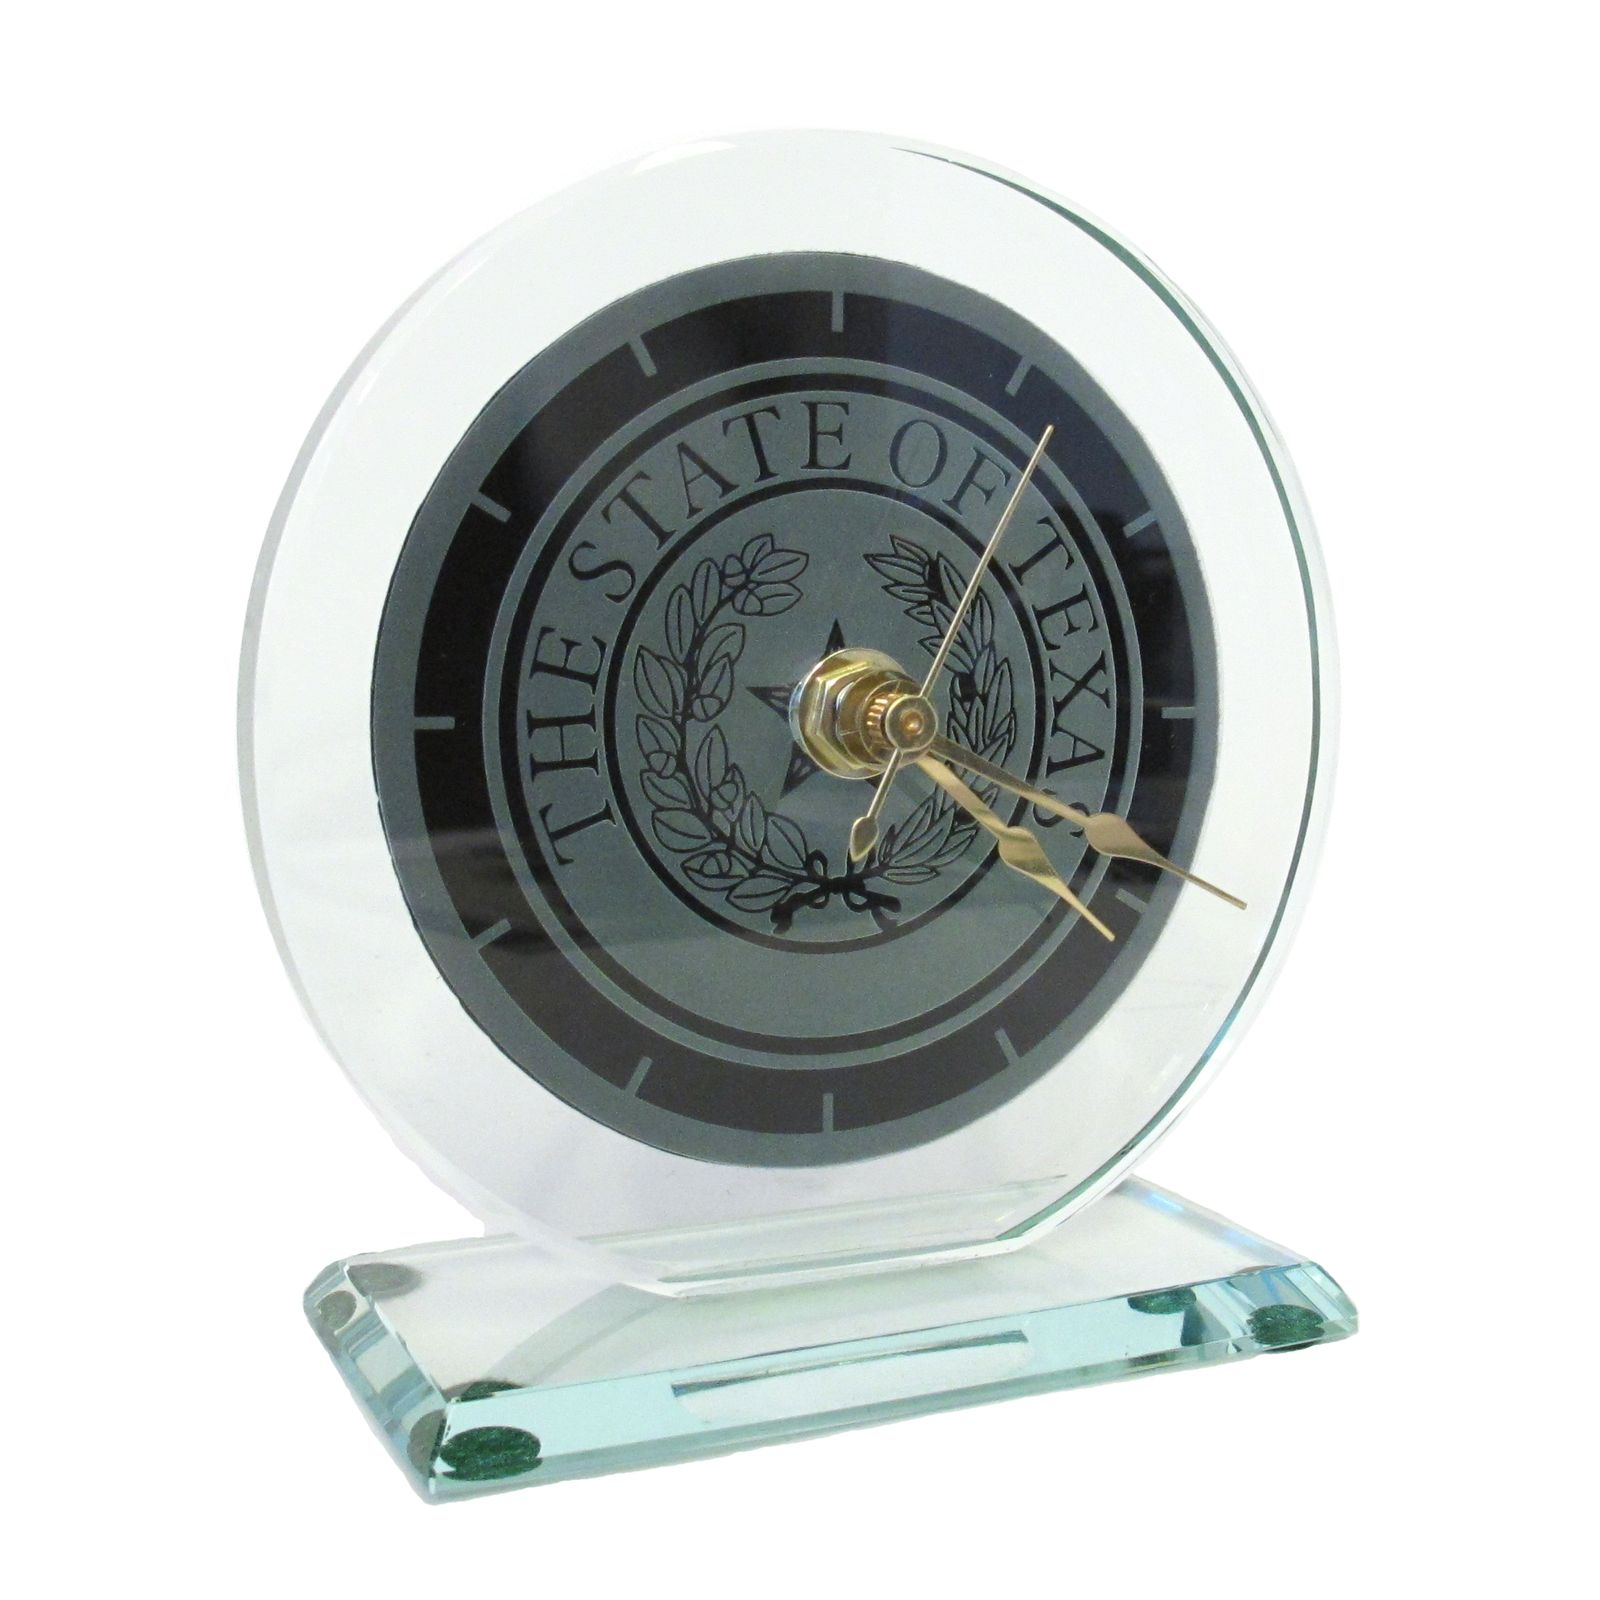 Texas State Seal Small Glass Desk Clock